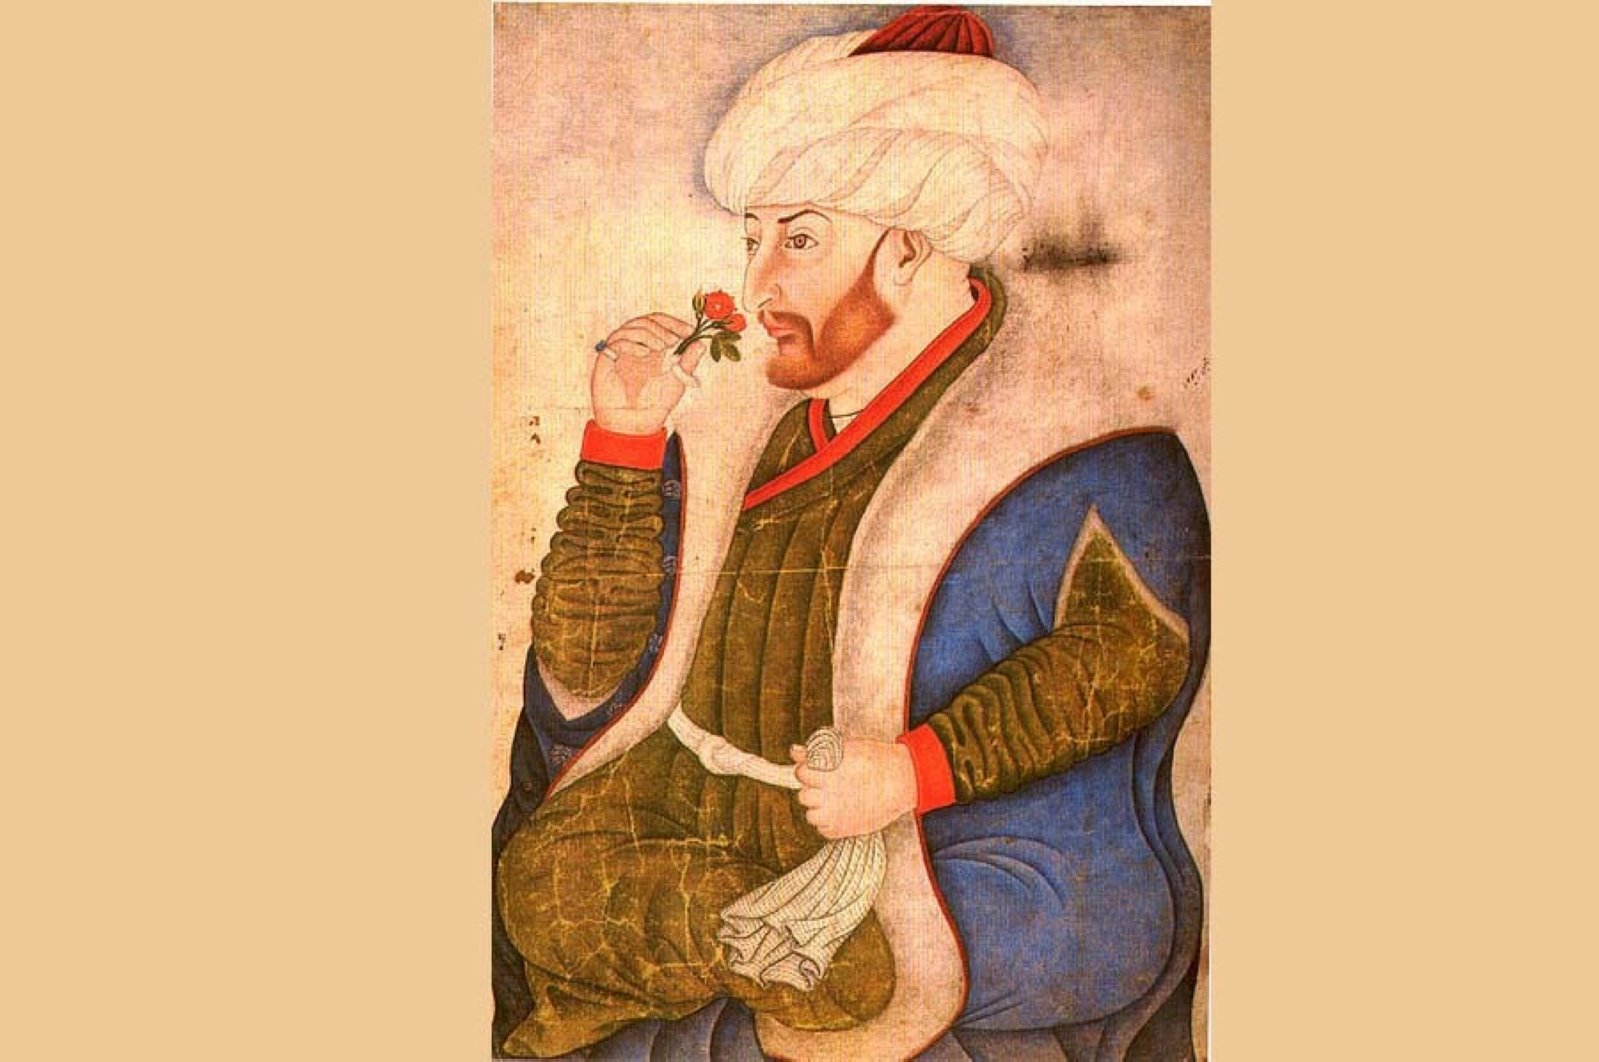 A portrait of Sultan Mehmed the Conqueror by artist Sinan Bey.